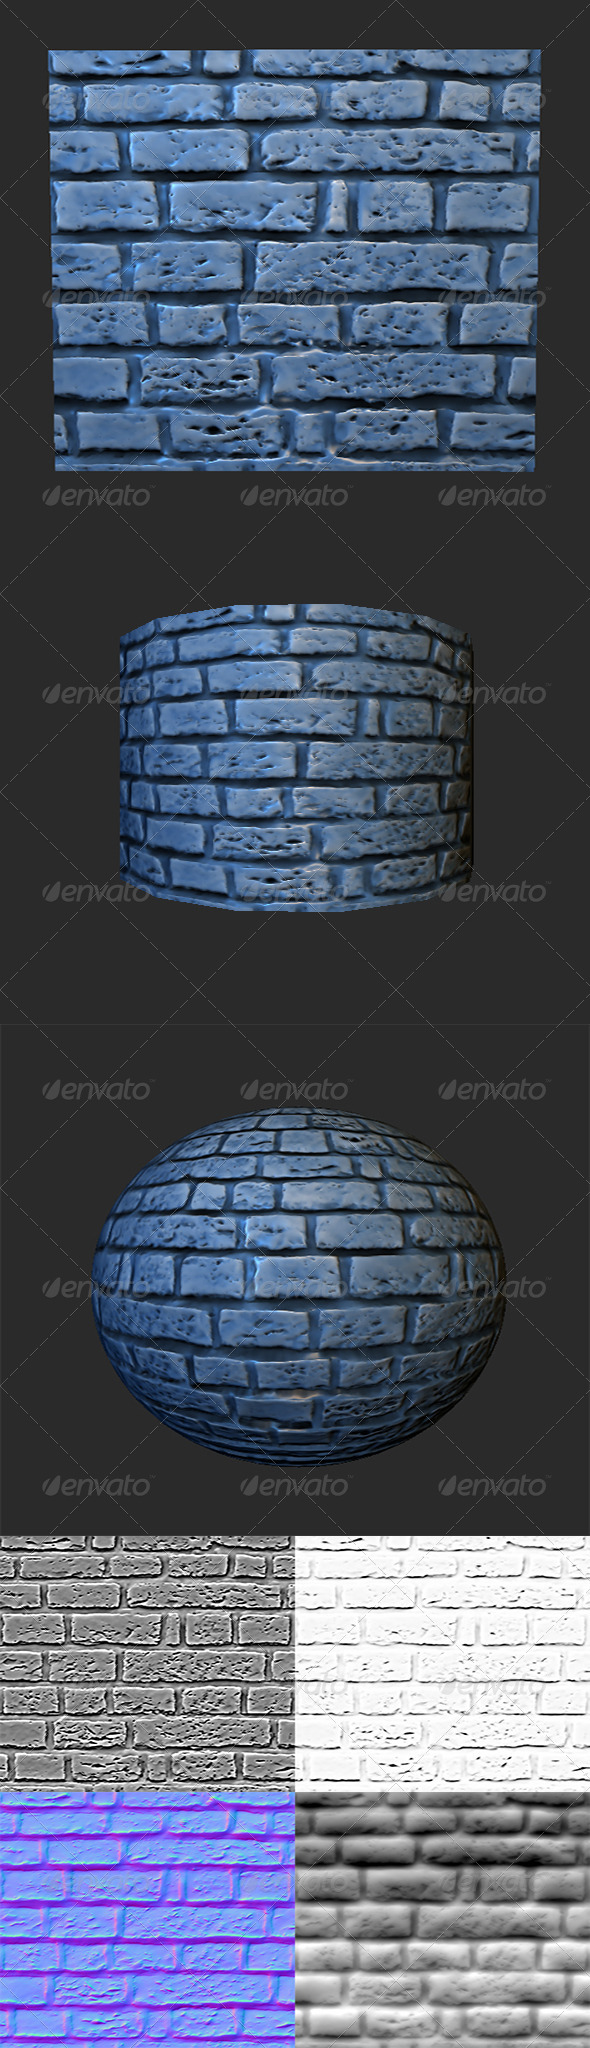 Stone Brick - 3DOcean Item for Sale